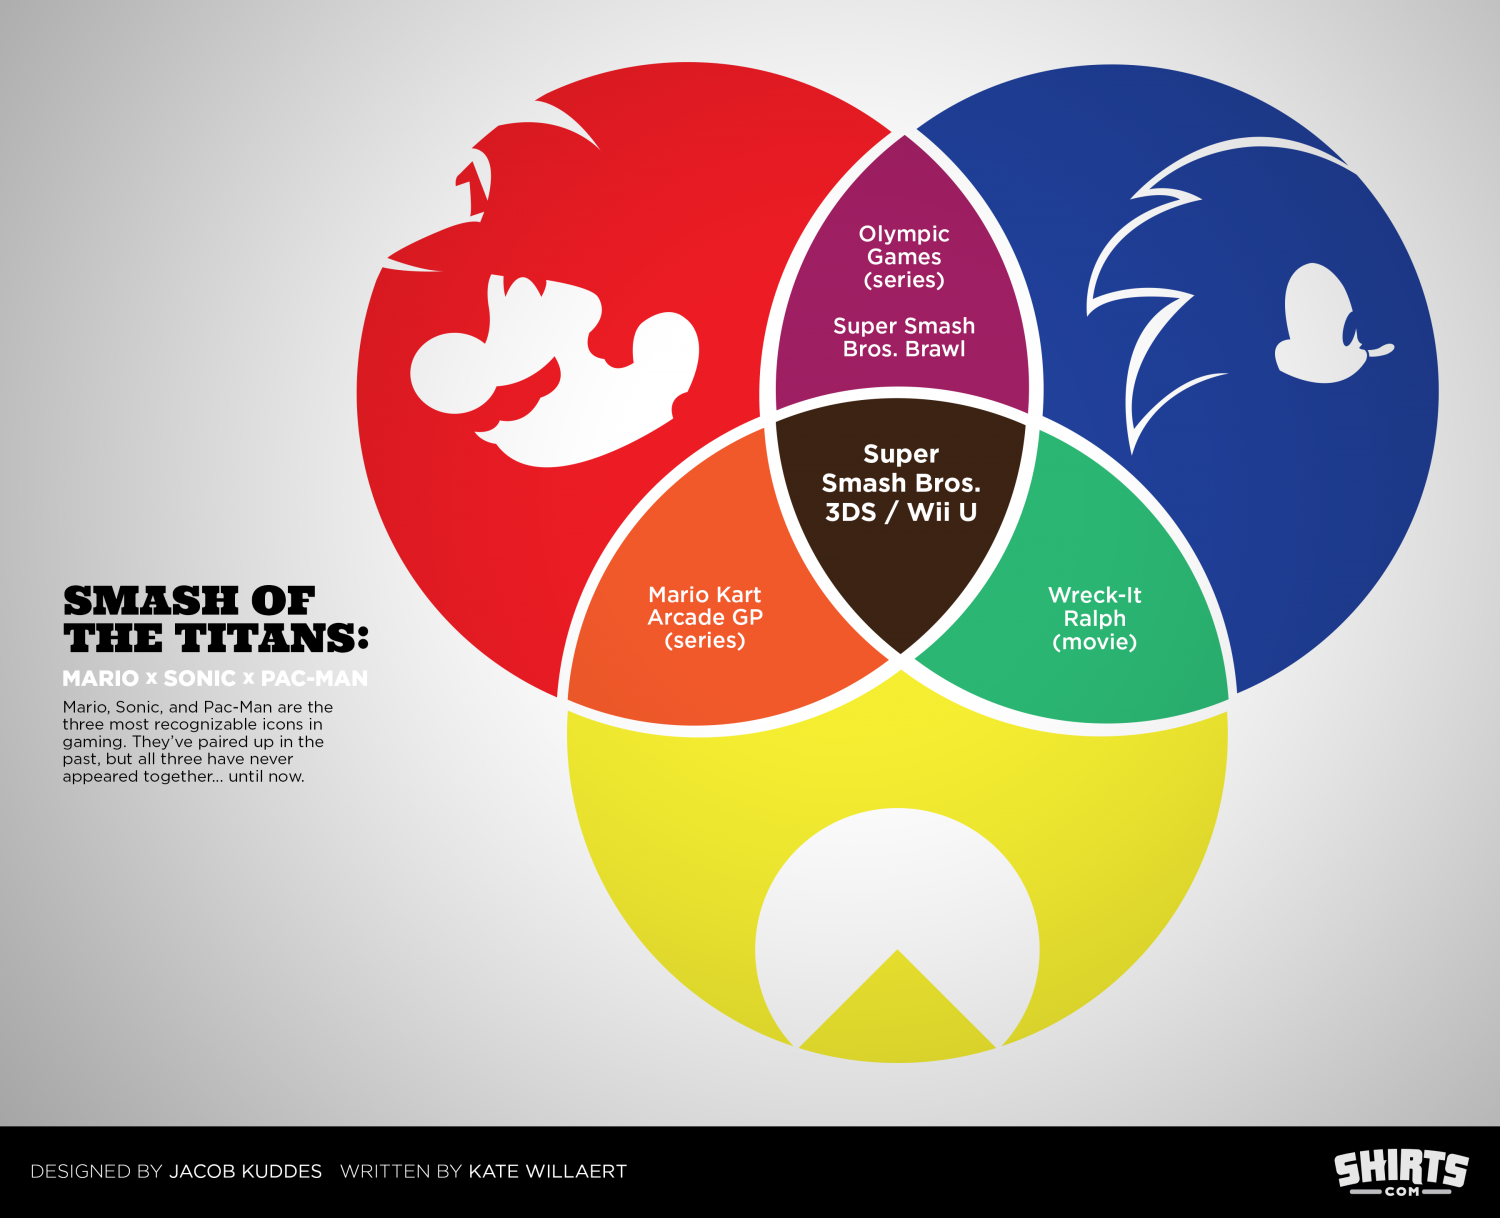 Super smash bros smash of the titans venn diagram visual super smash bros smash of the titans venn diagram infographic pooptronica